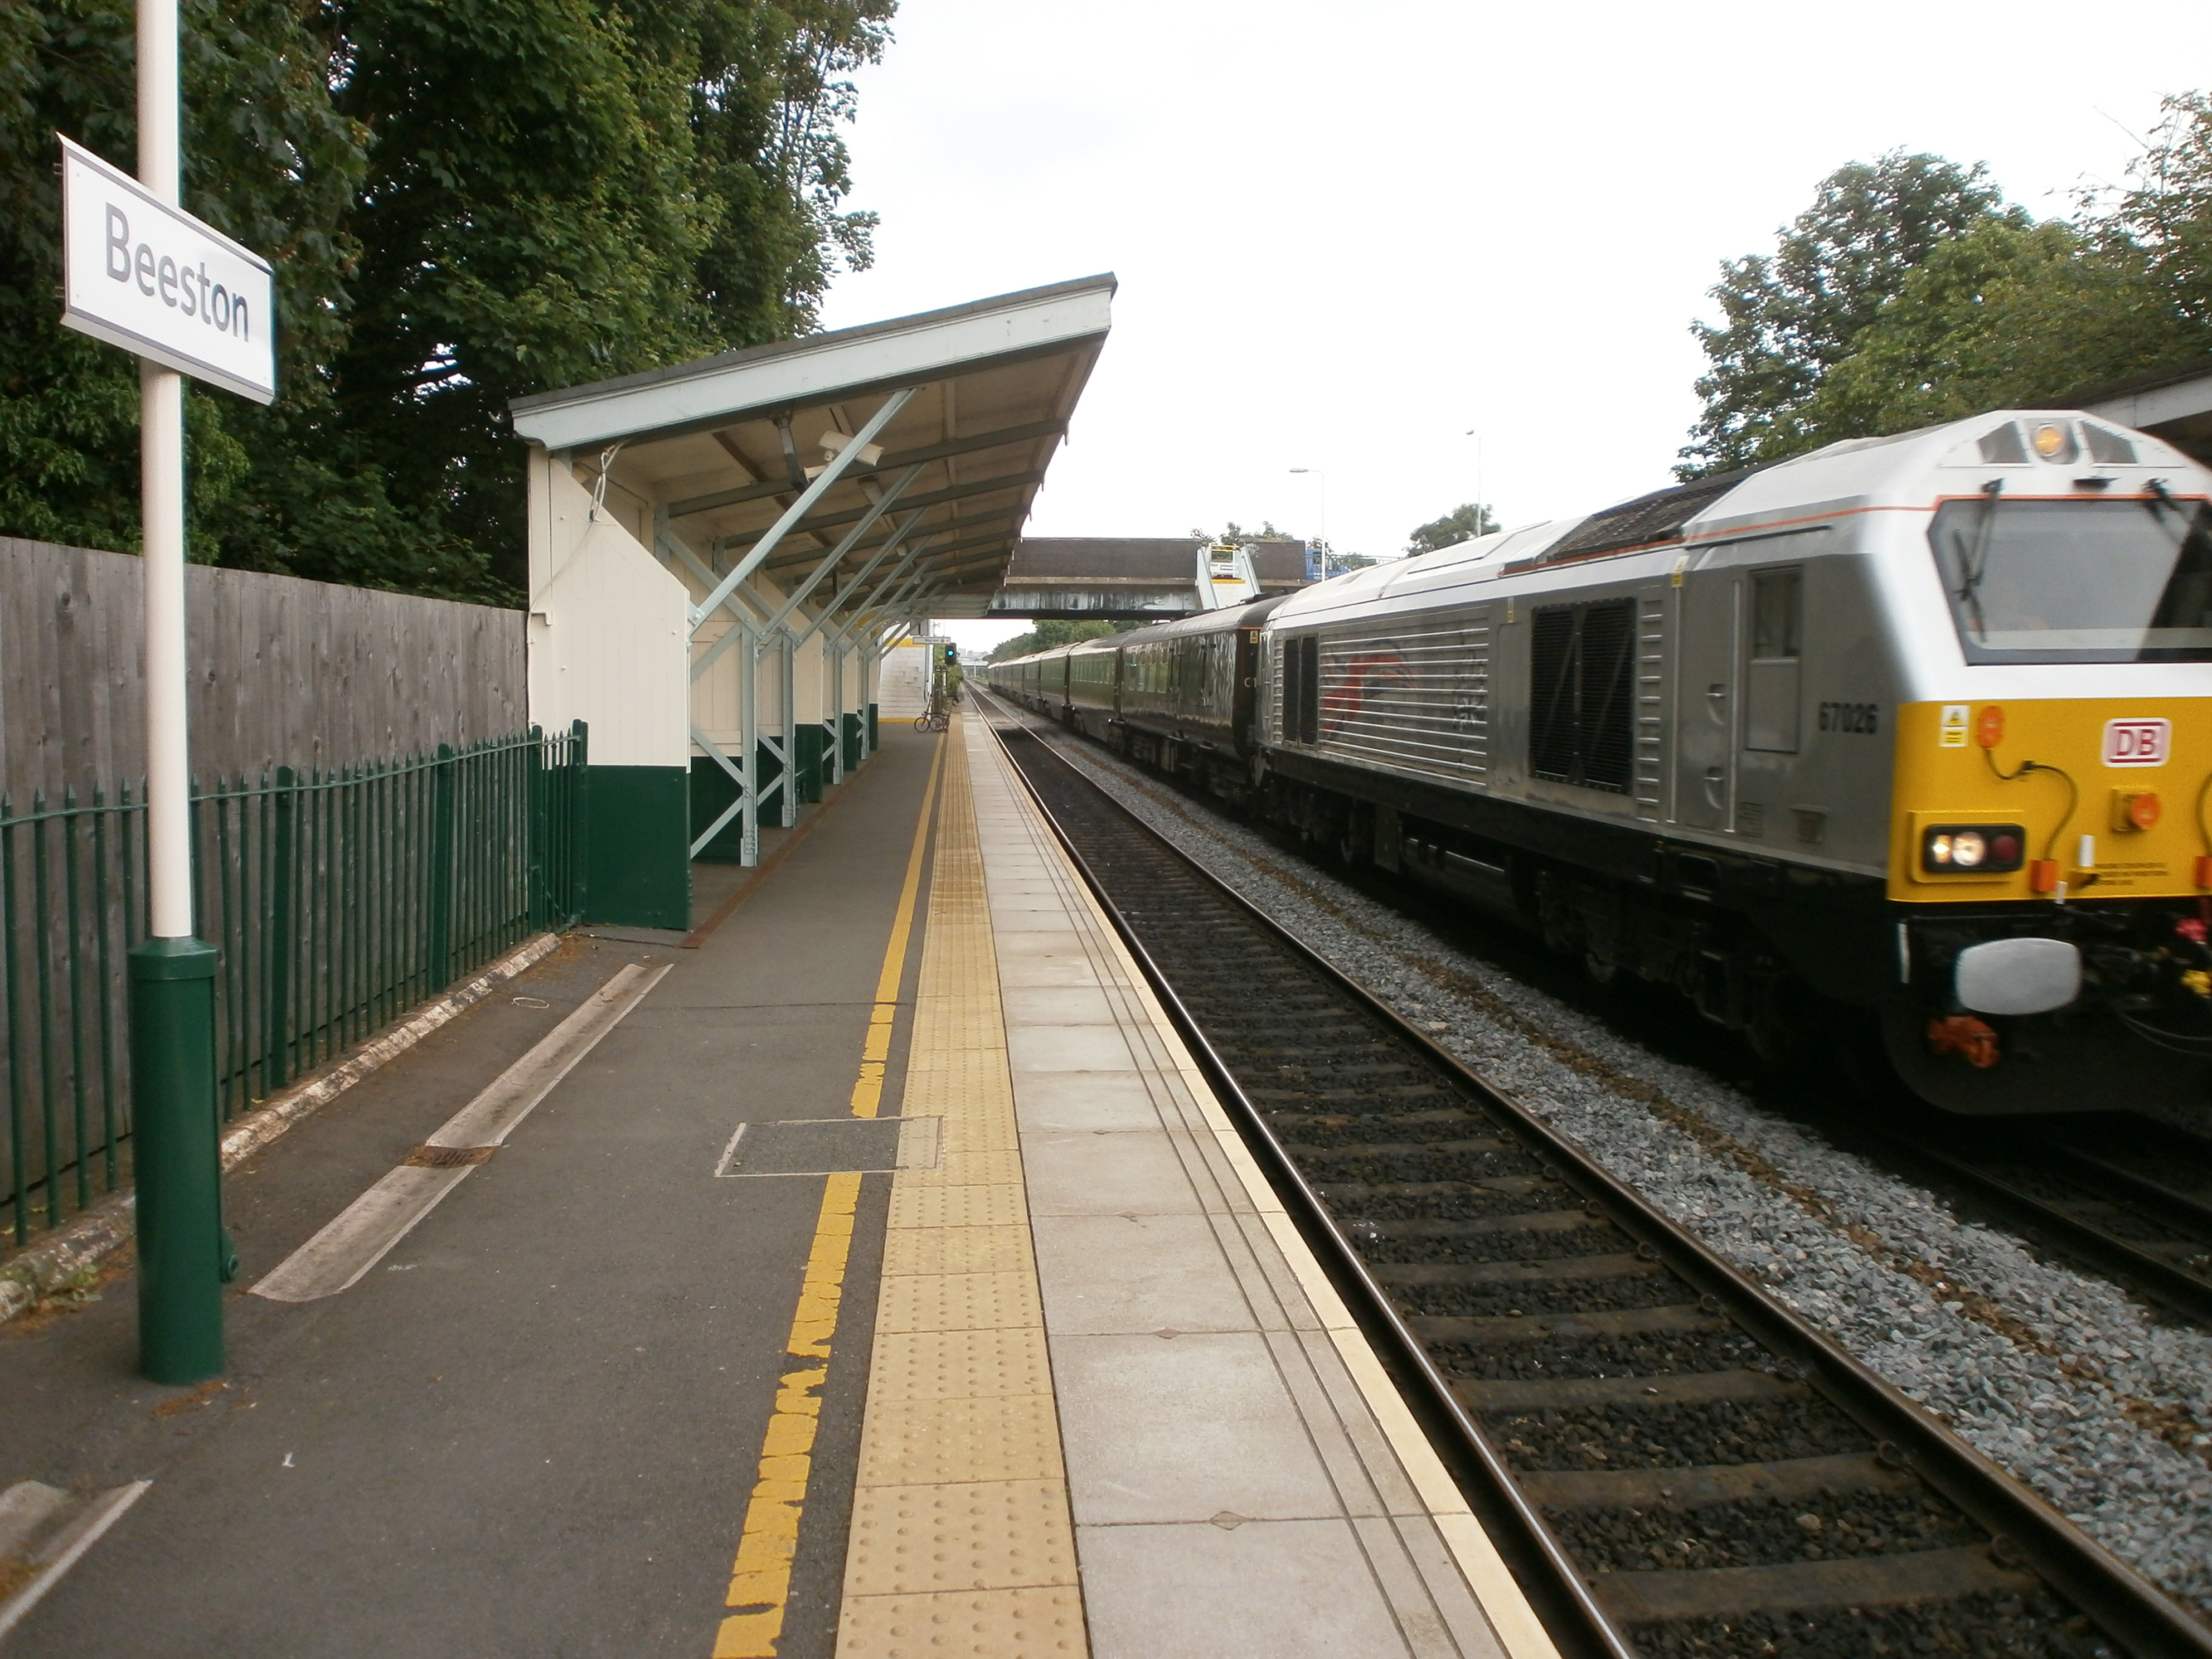 an essay on a visit to a railway station Free essays on essay on a visit to a railway station get help with your writing 1 through 30.